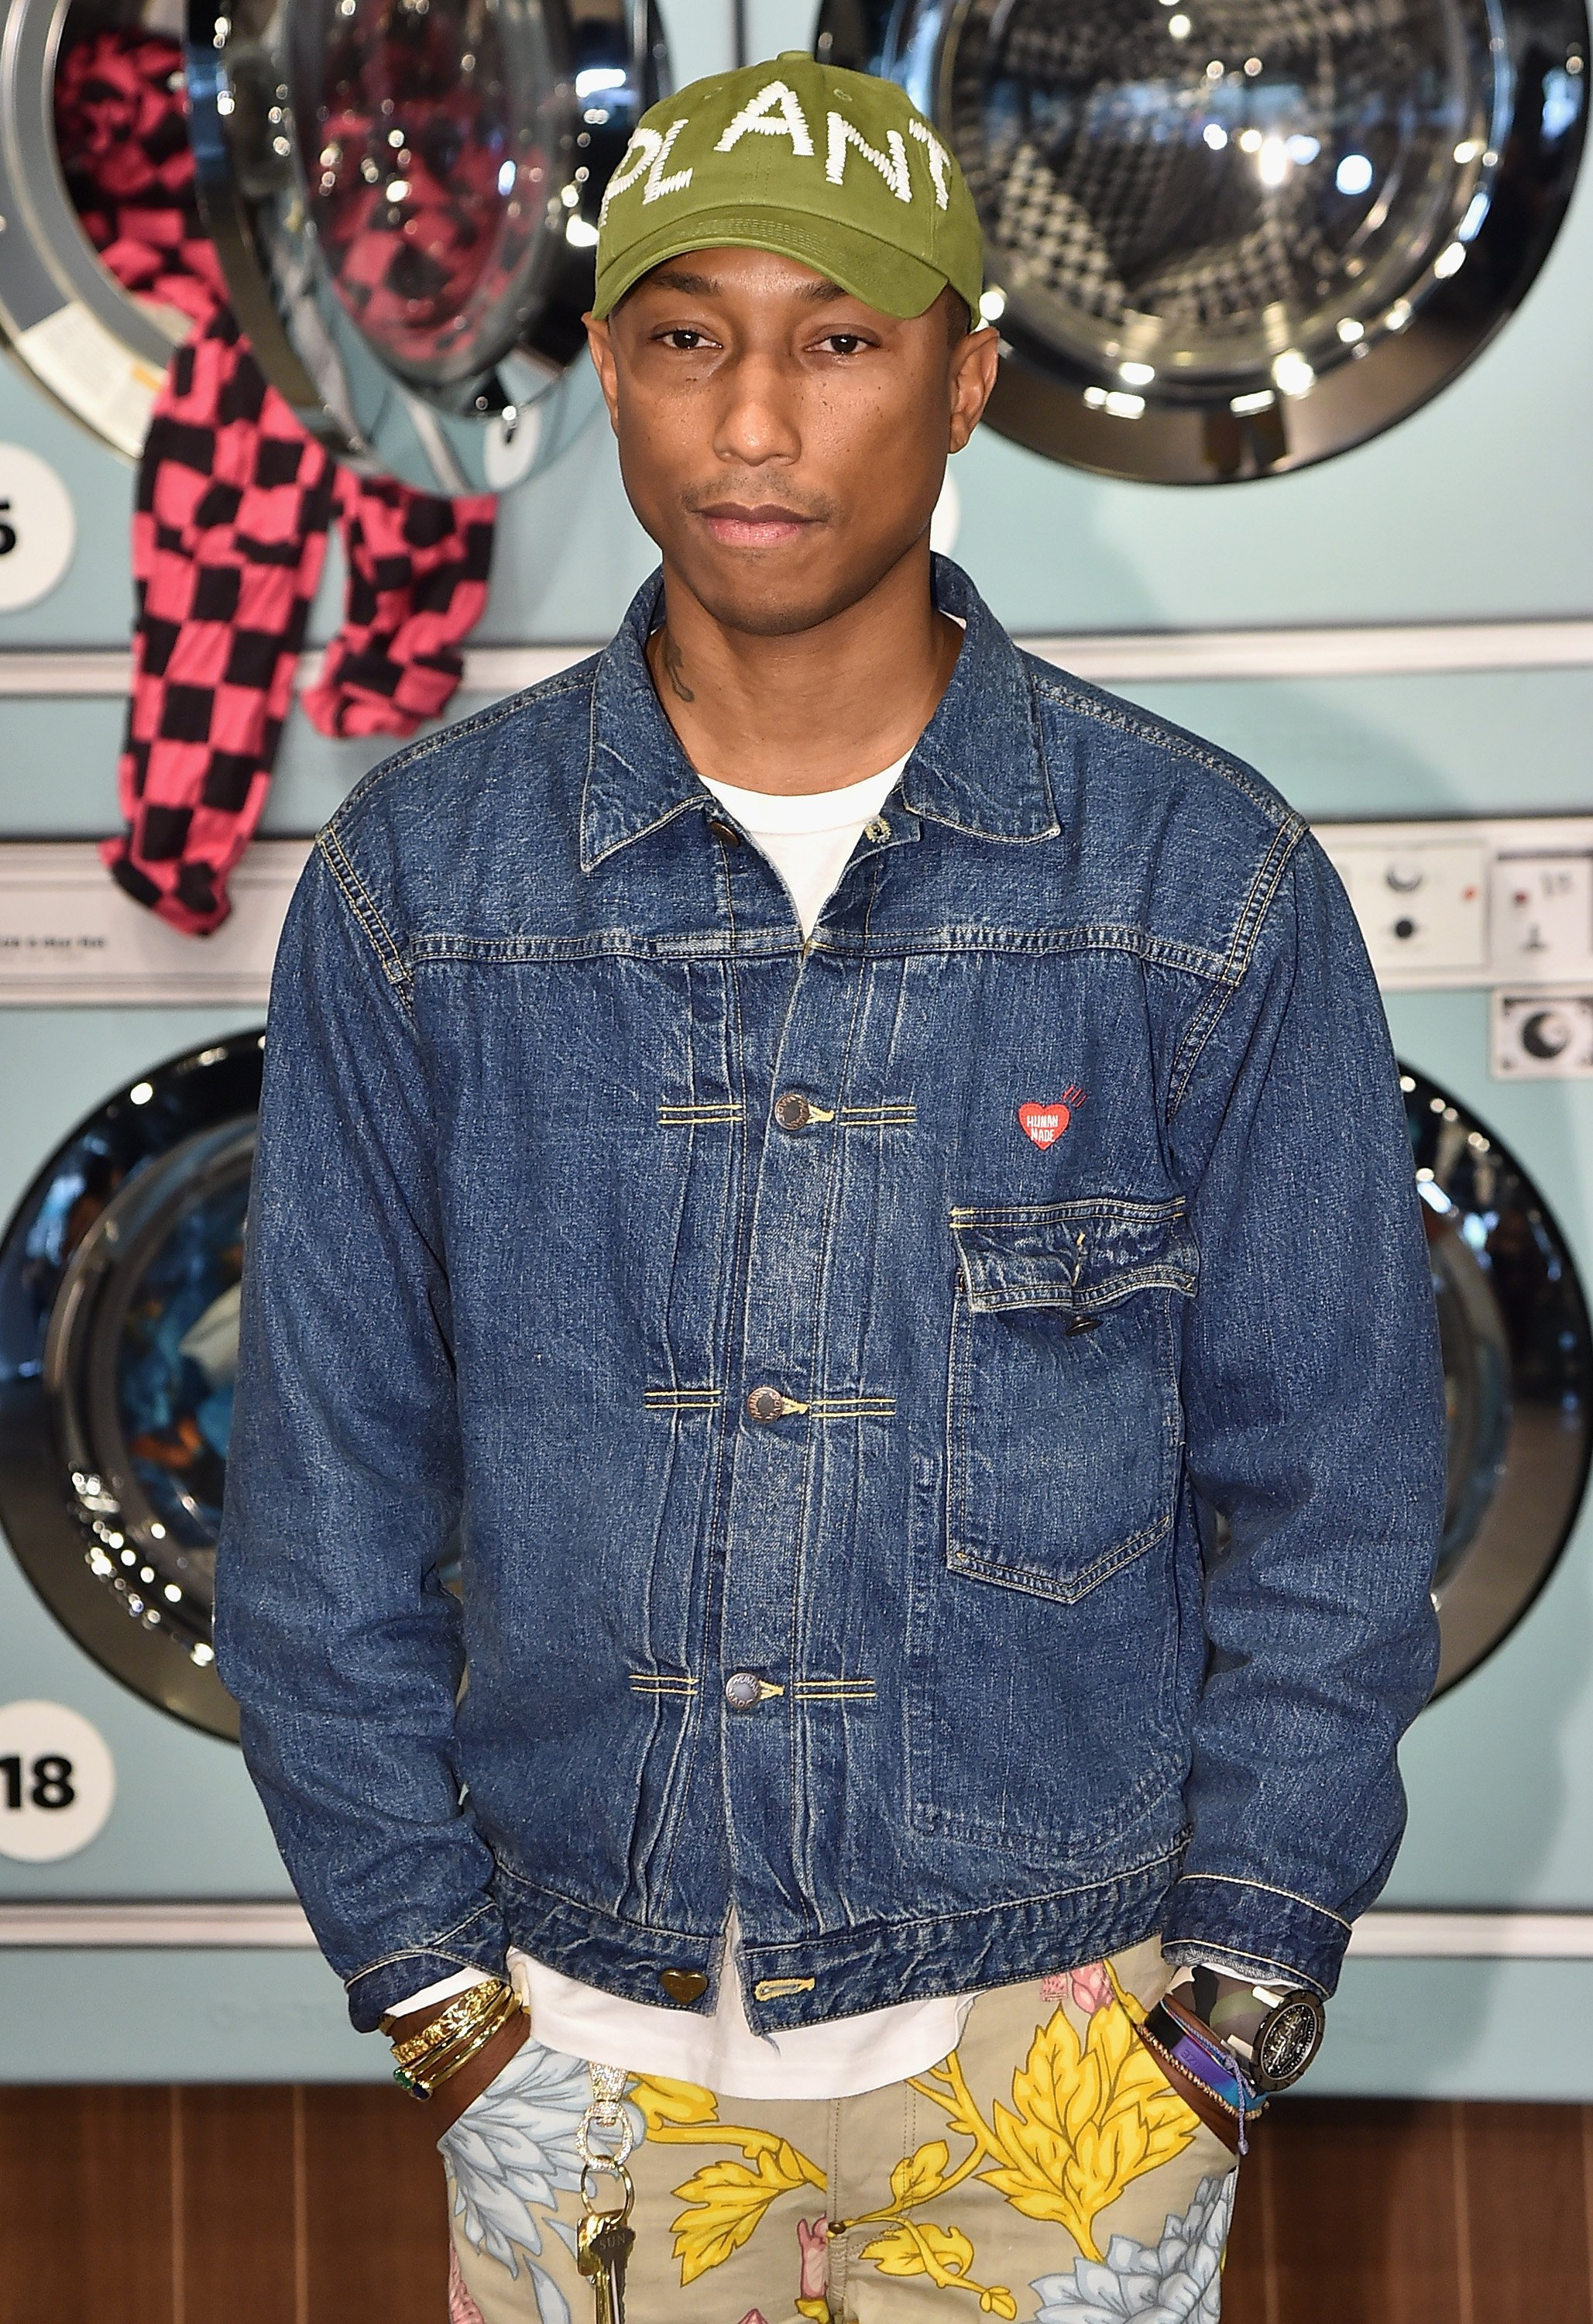 Pharrell Williams at New York Fashion Week on Sept. 13, 2017 in New York City   Photo: Getty Images